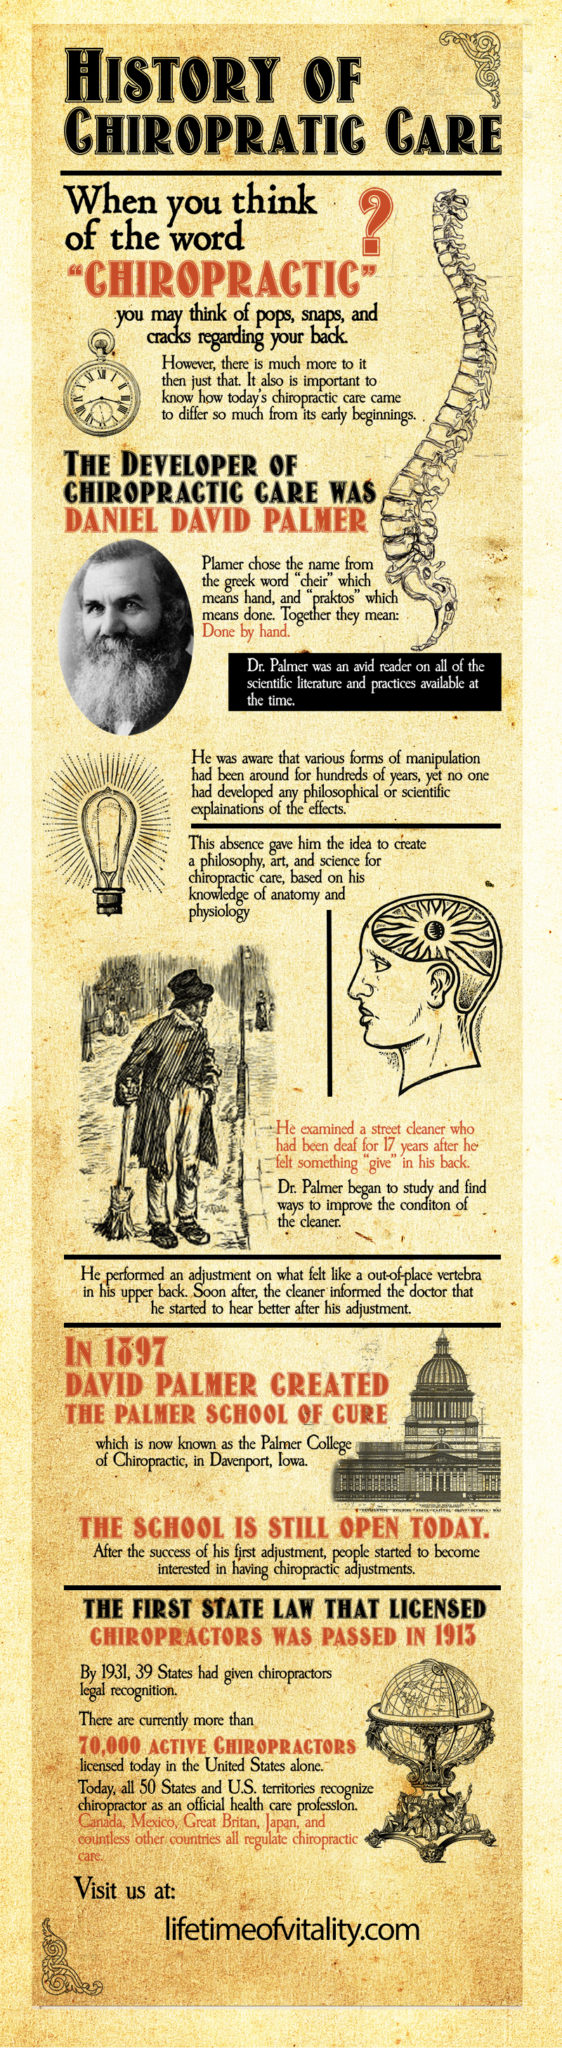 History of modern chiropractic care